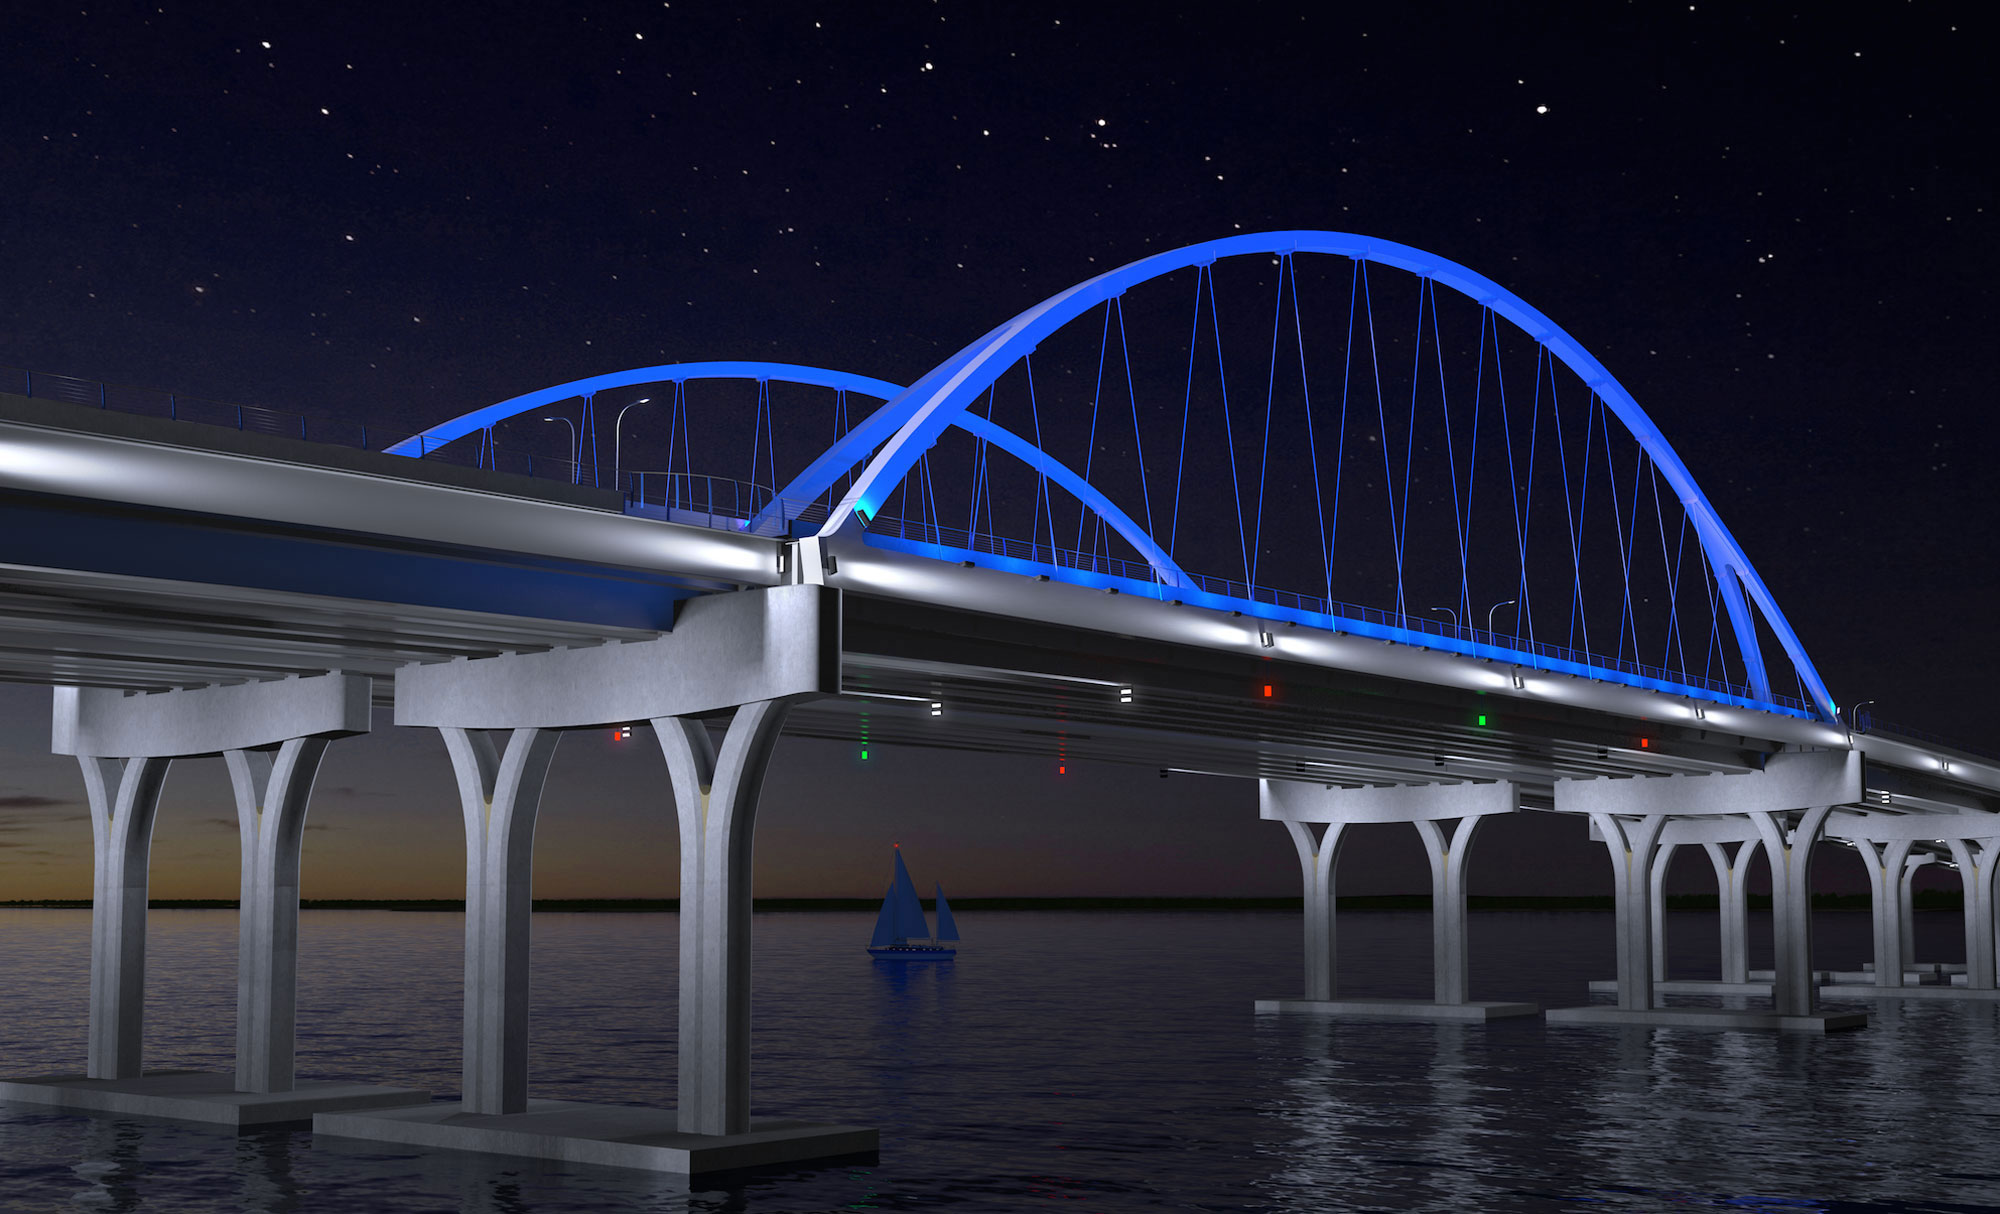 Aesthetic lighting a signature bridge element